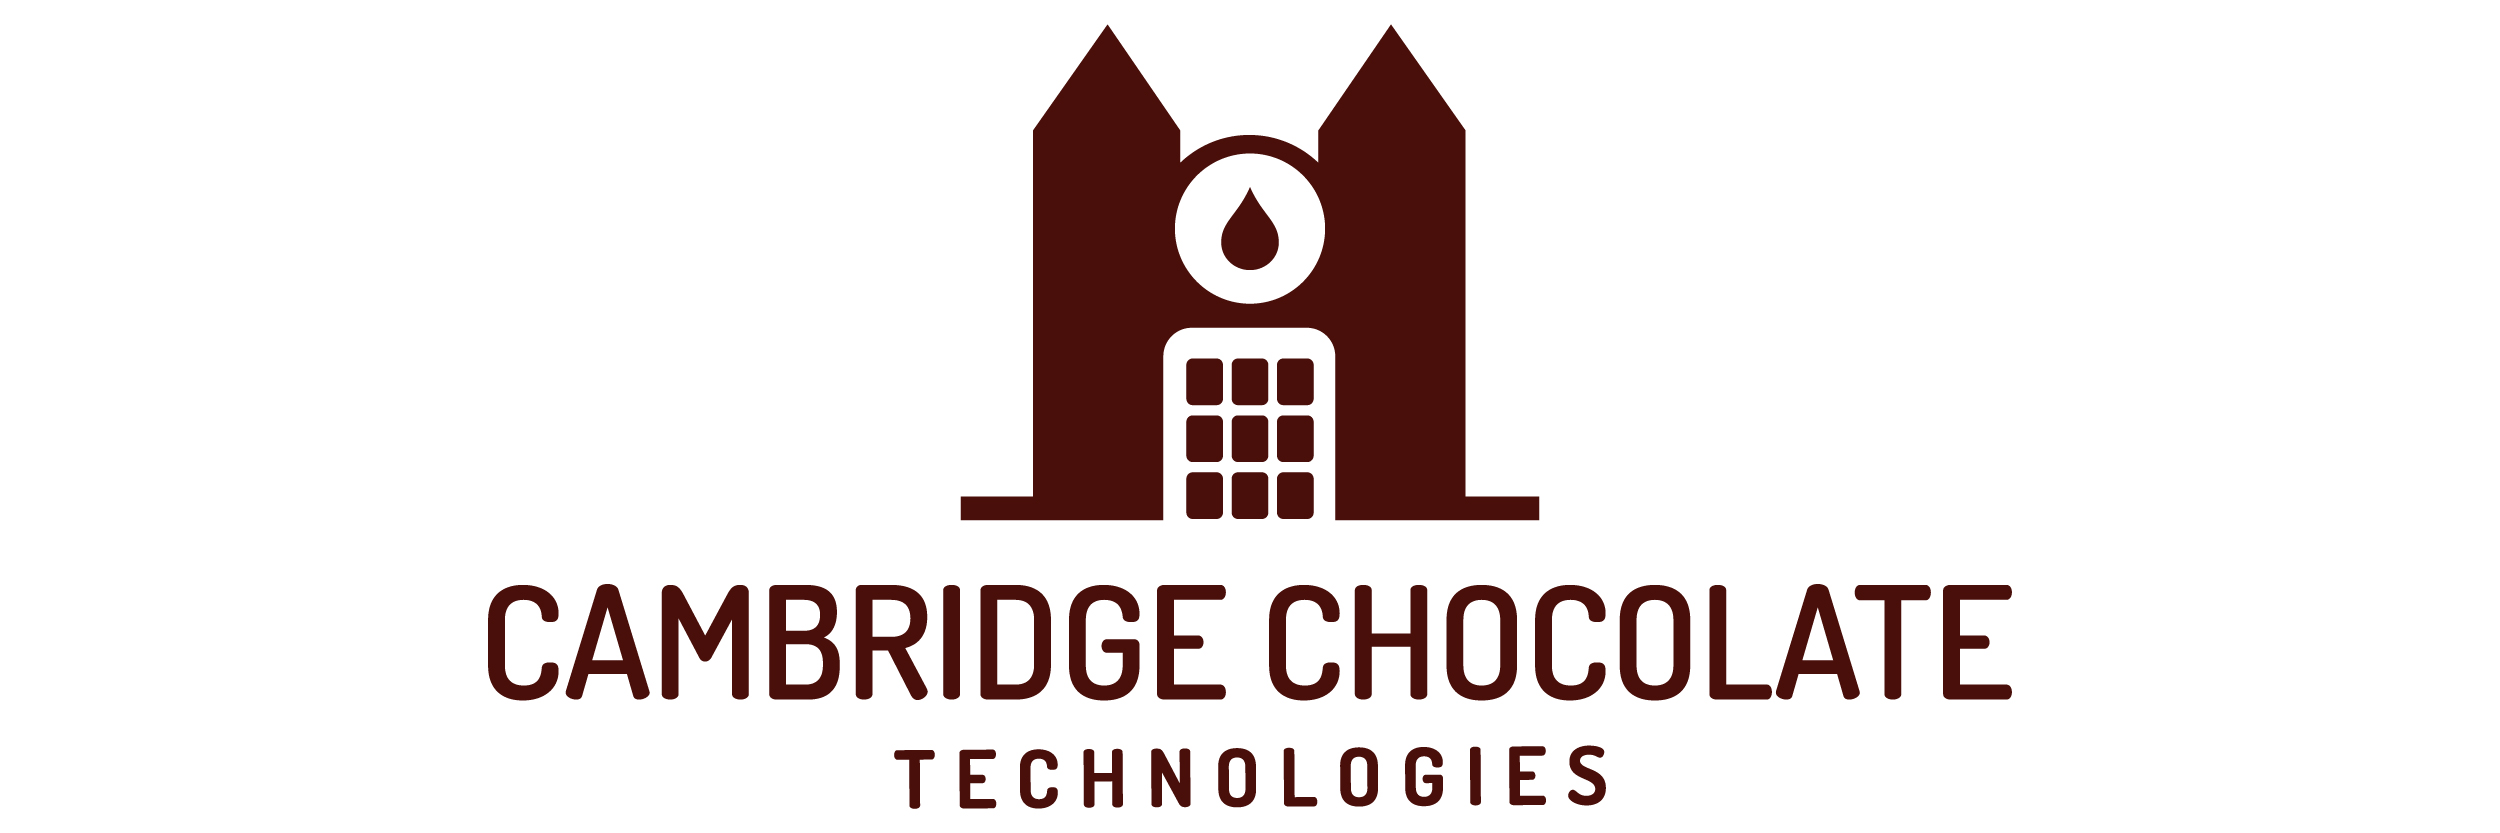 cambridge-chocolate-technologies